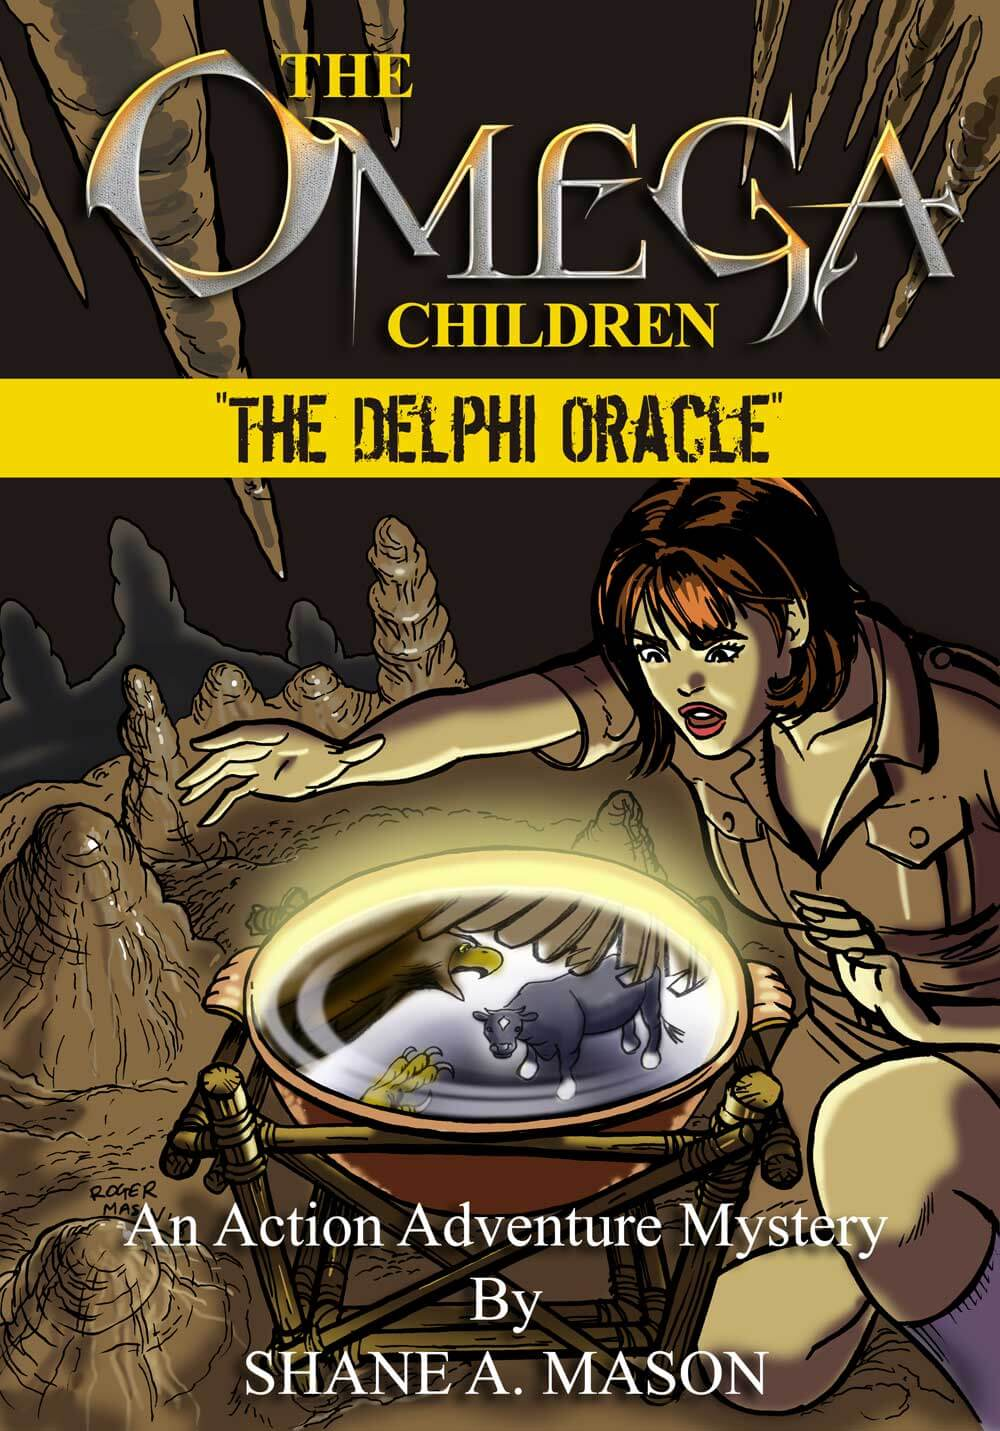 Action adventure fantasy YA book 4 of the Omega Children series